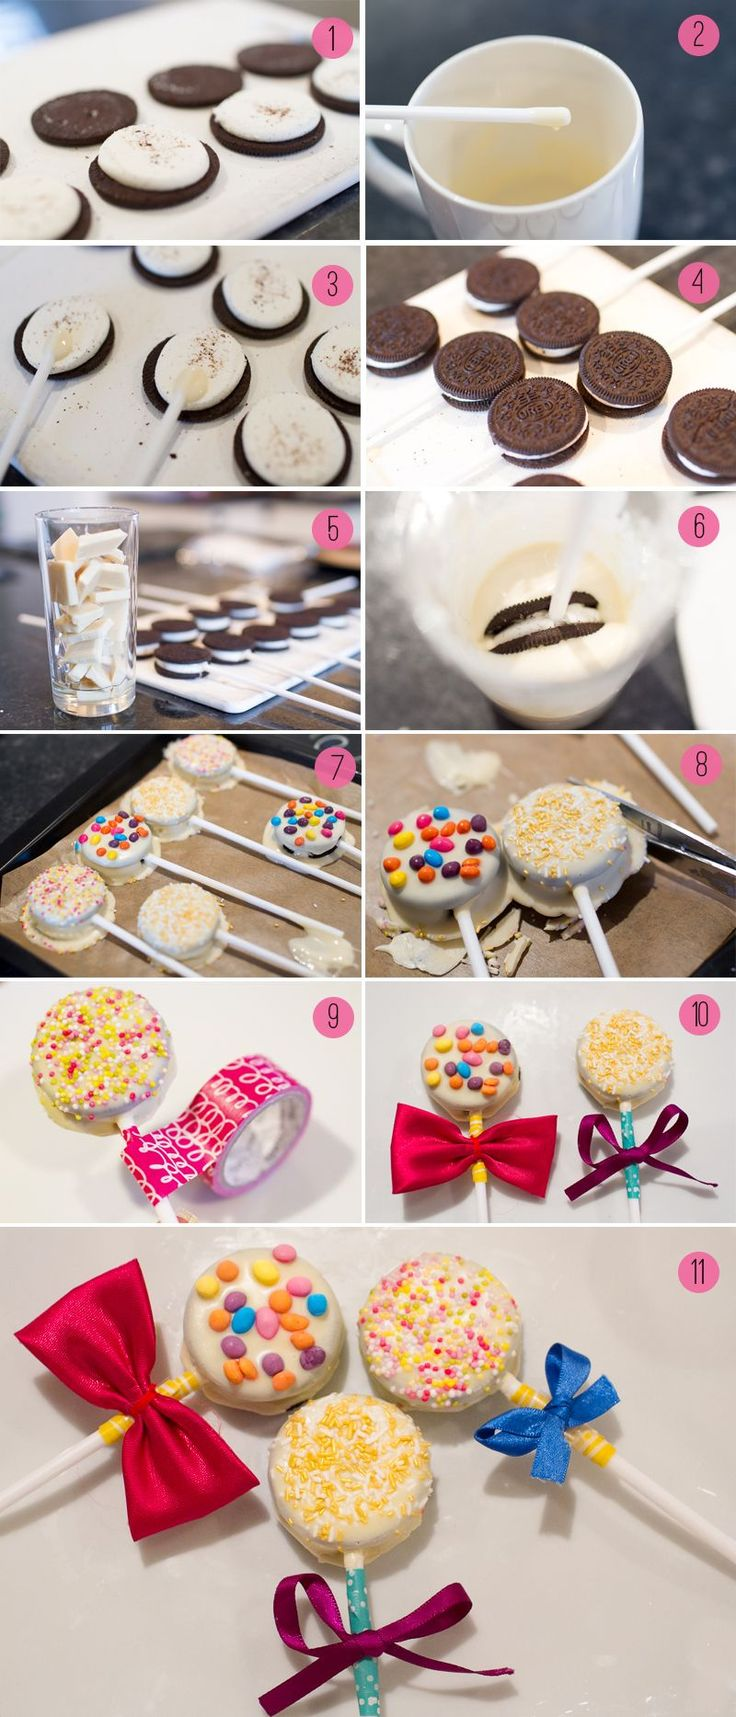 DIY -How To Make Oreo Pops